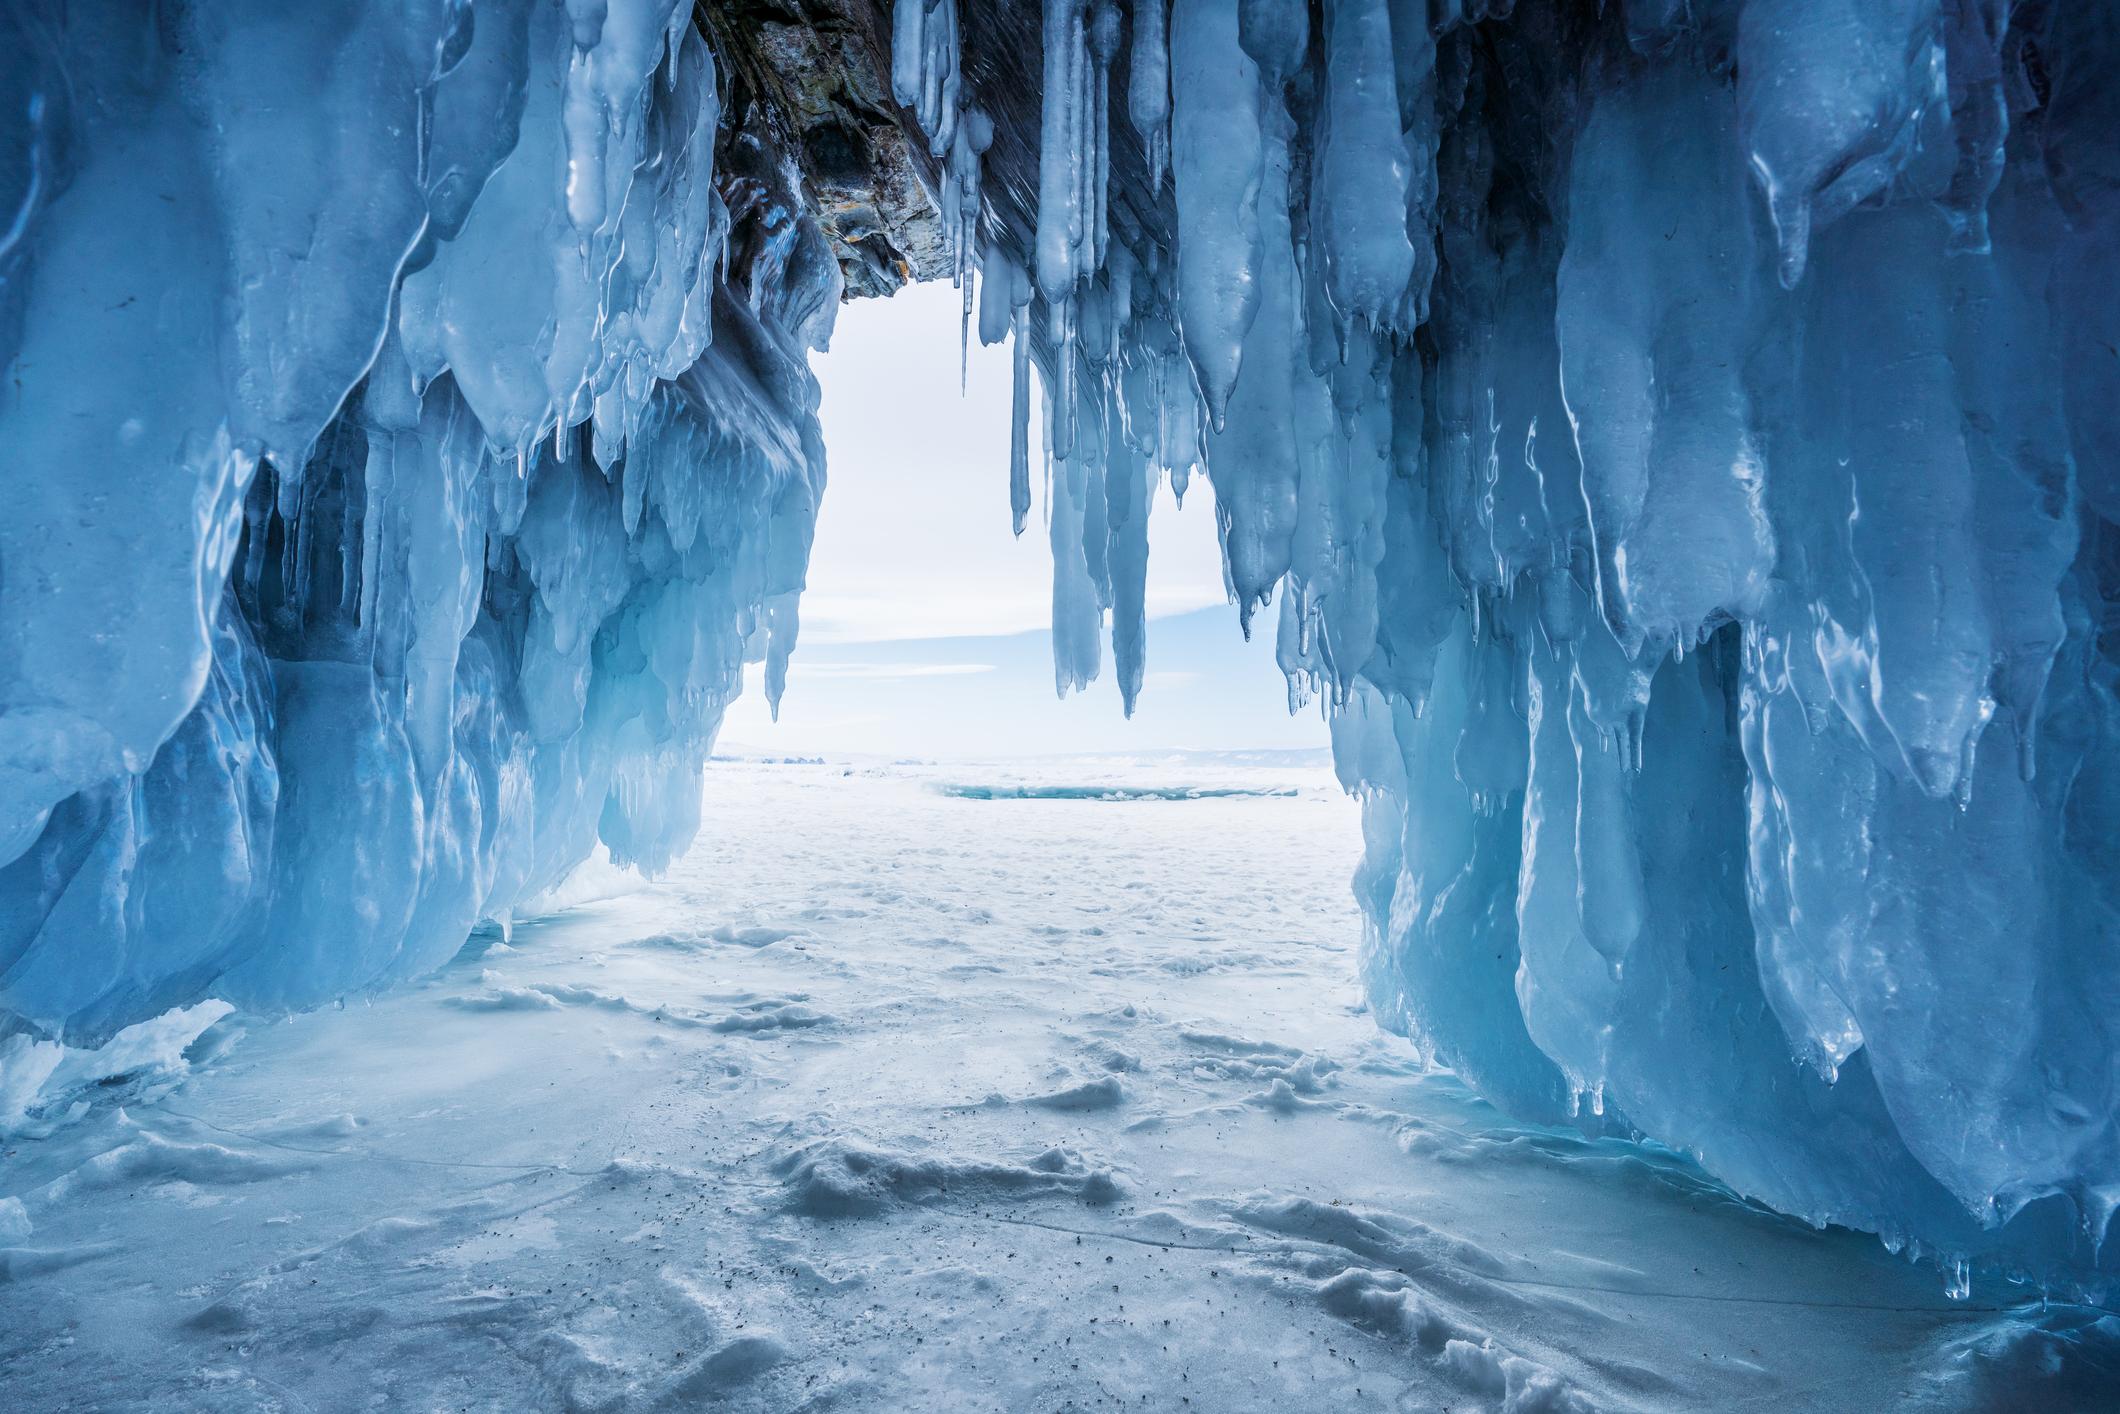 Frozen ice cave with bright sunlight